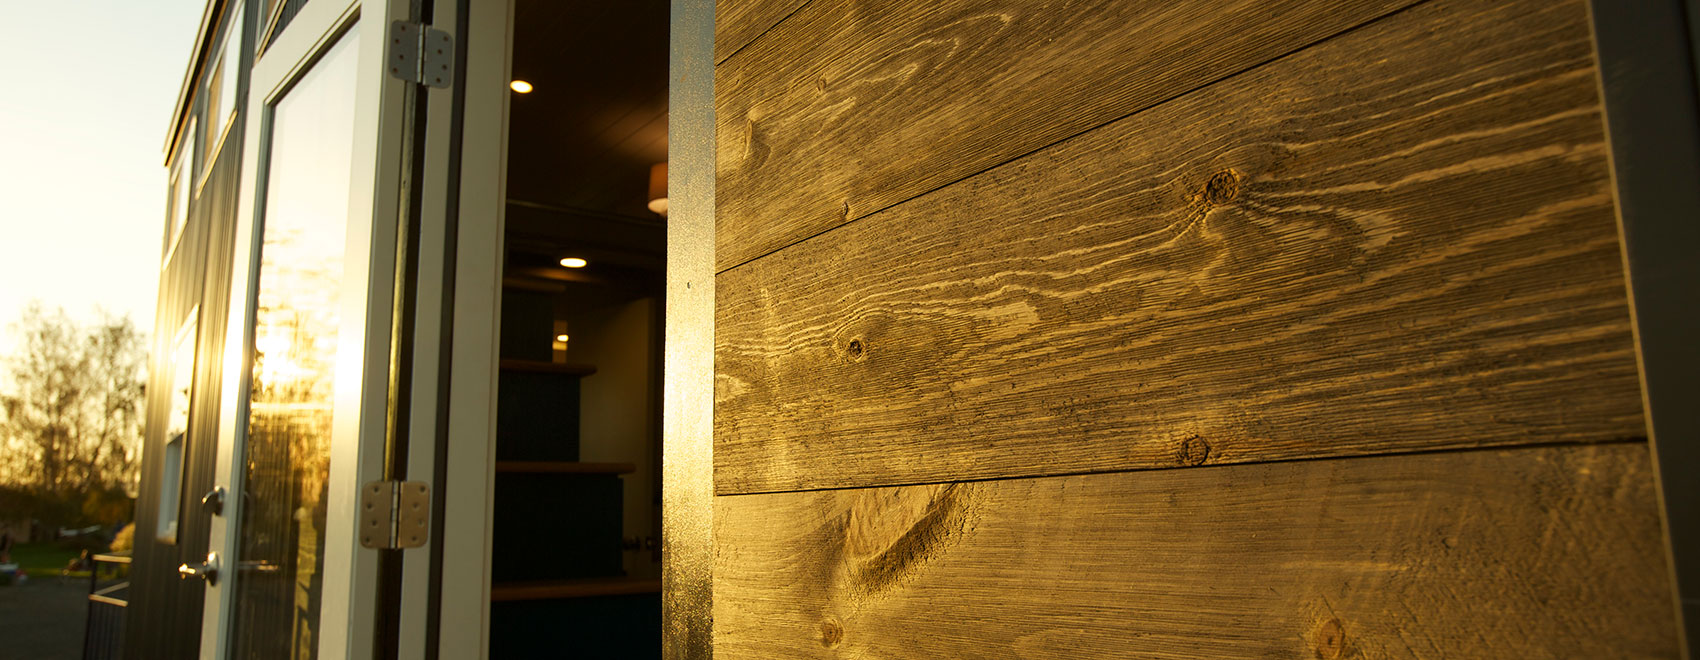 Barn Wood Siding